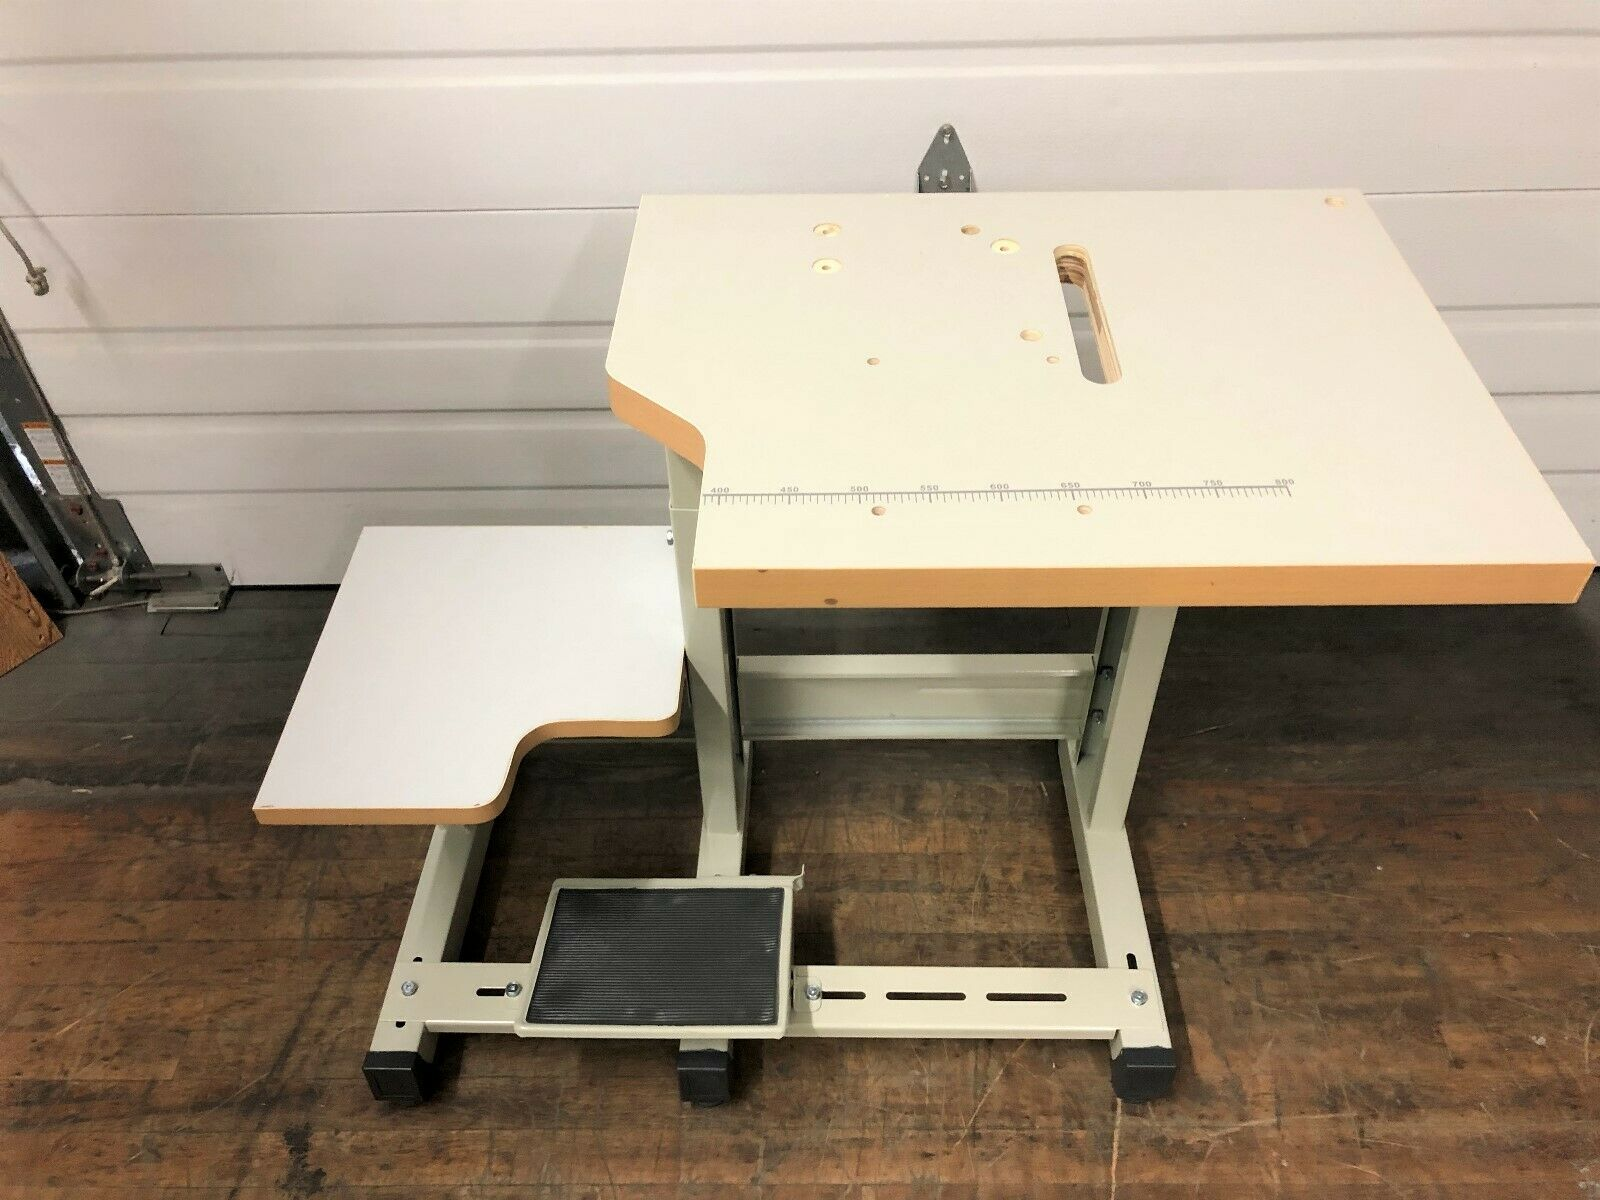 sewline new special 3 leg table set